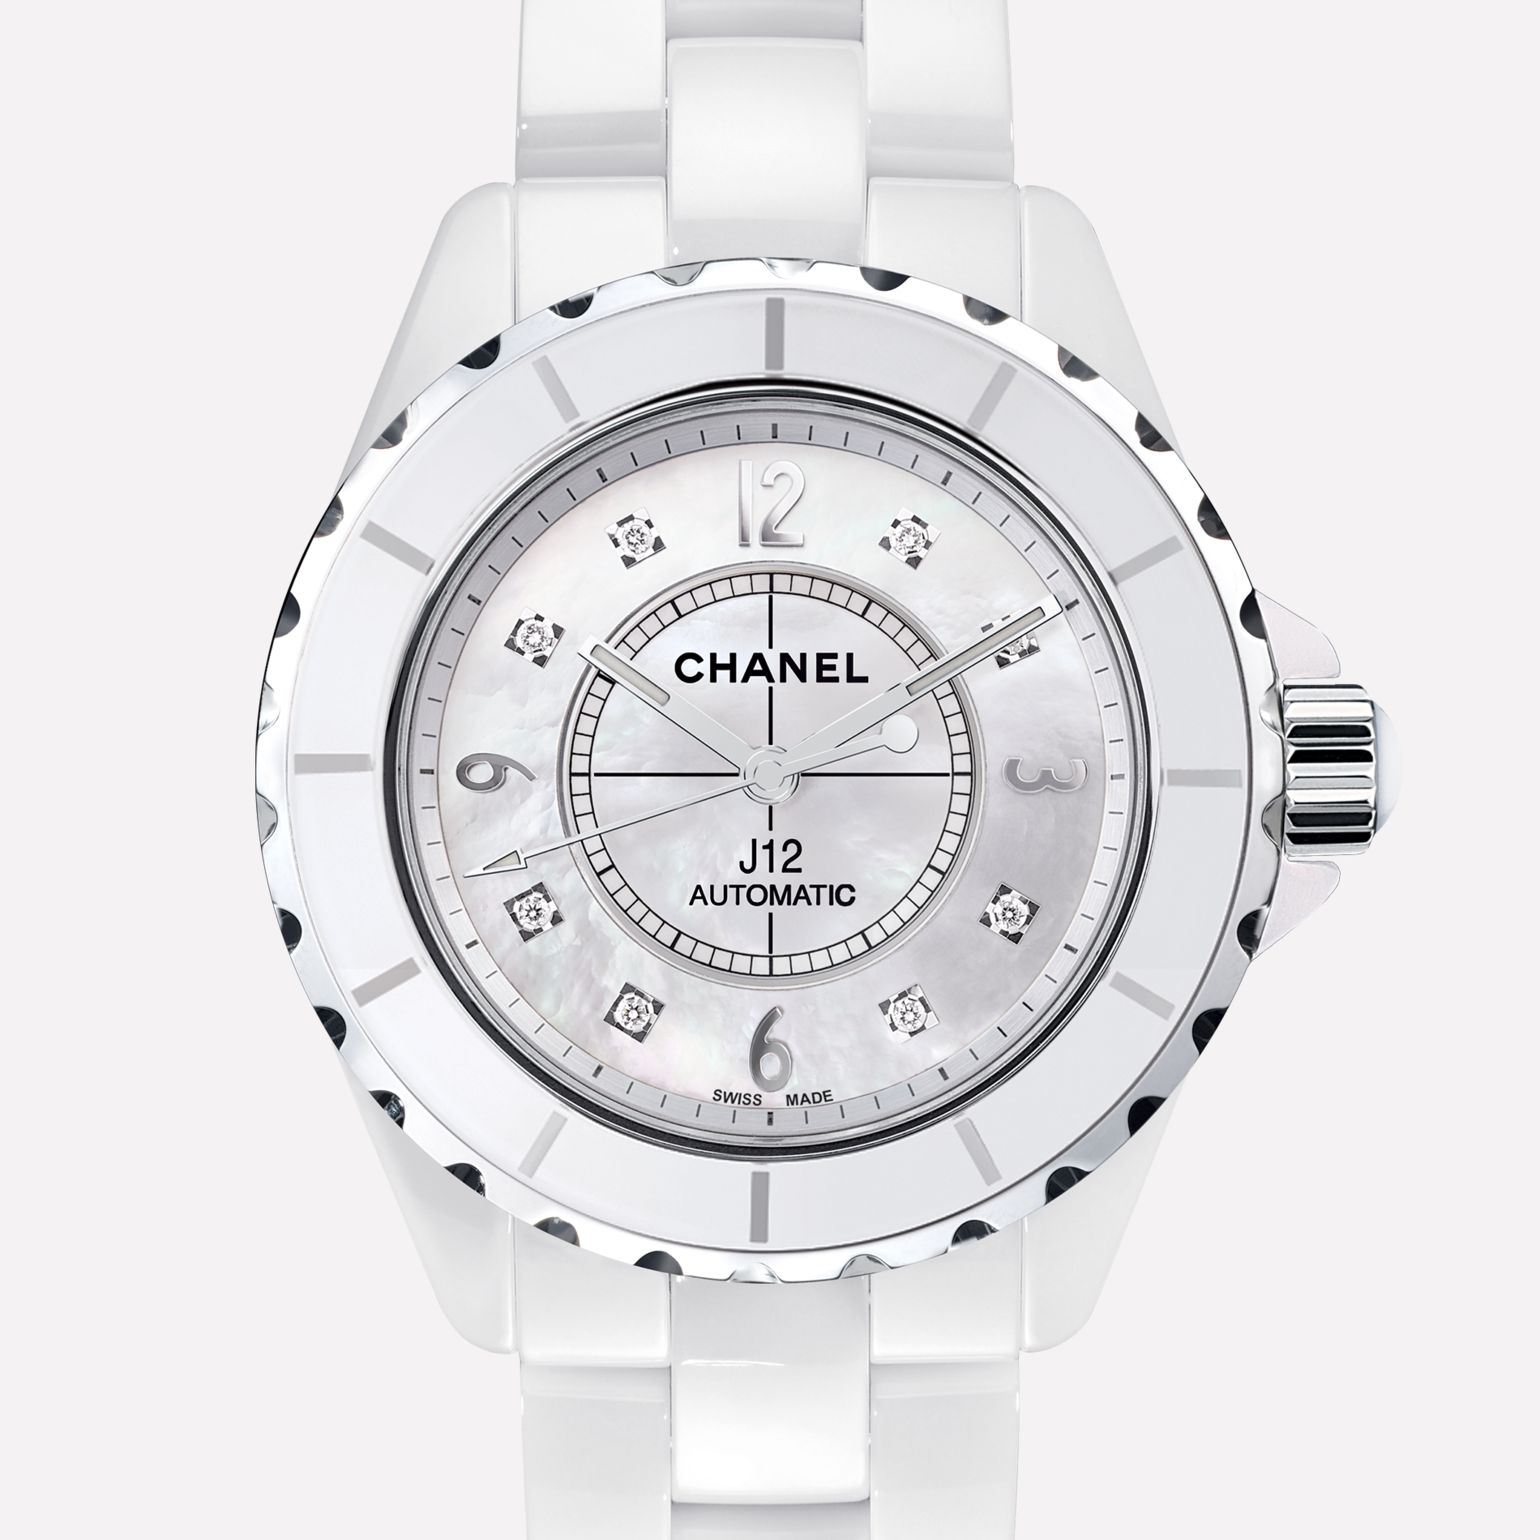 J12 White highly resistant ceramic and steel, diamond indicators, white mother-of-pearl dial